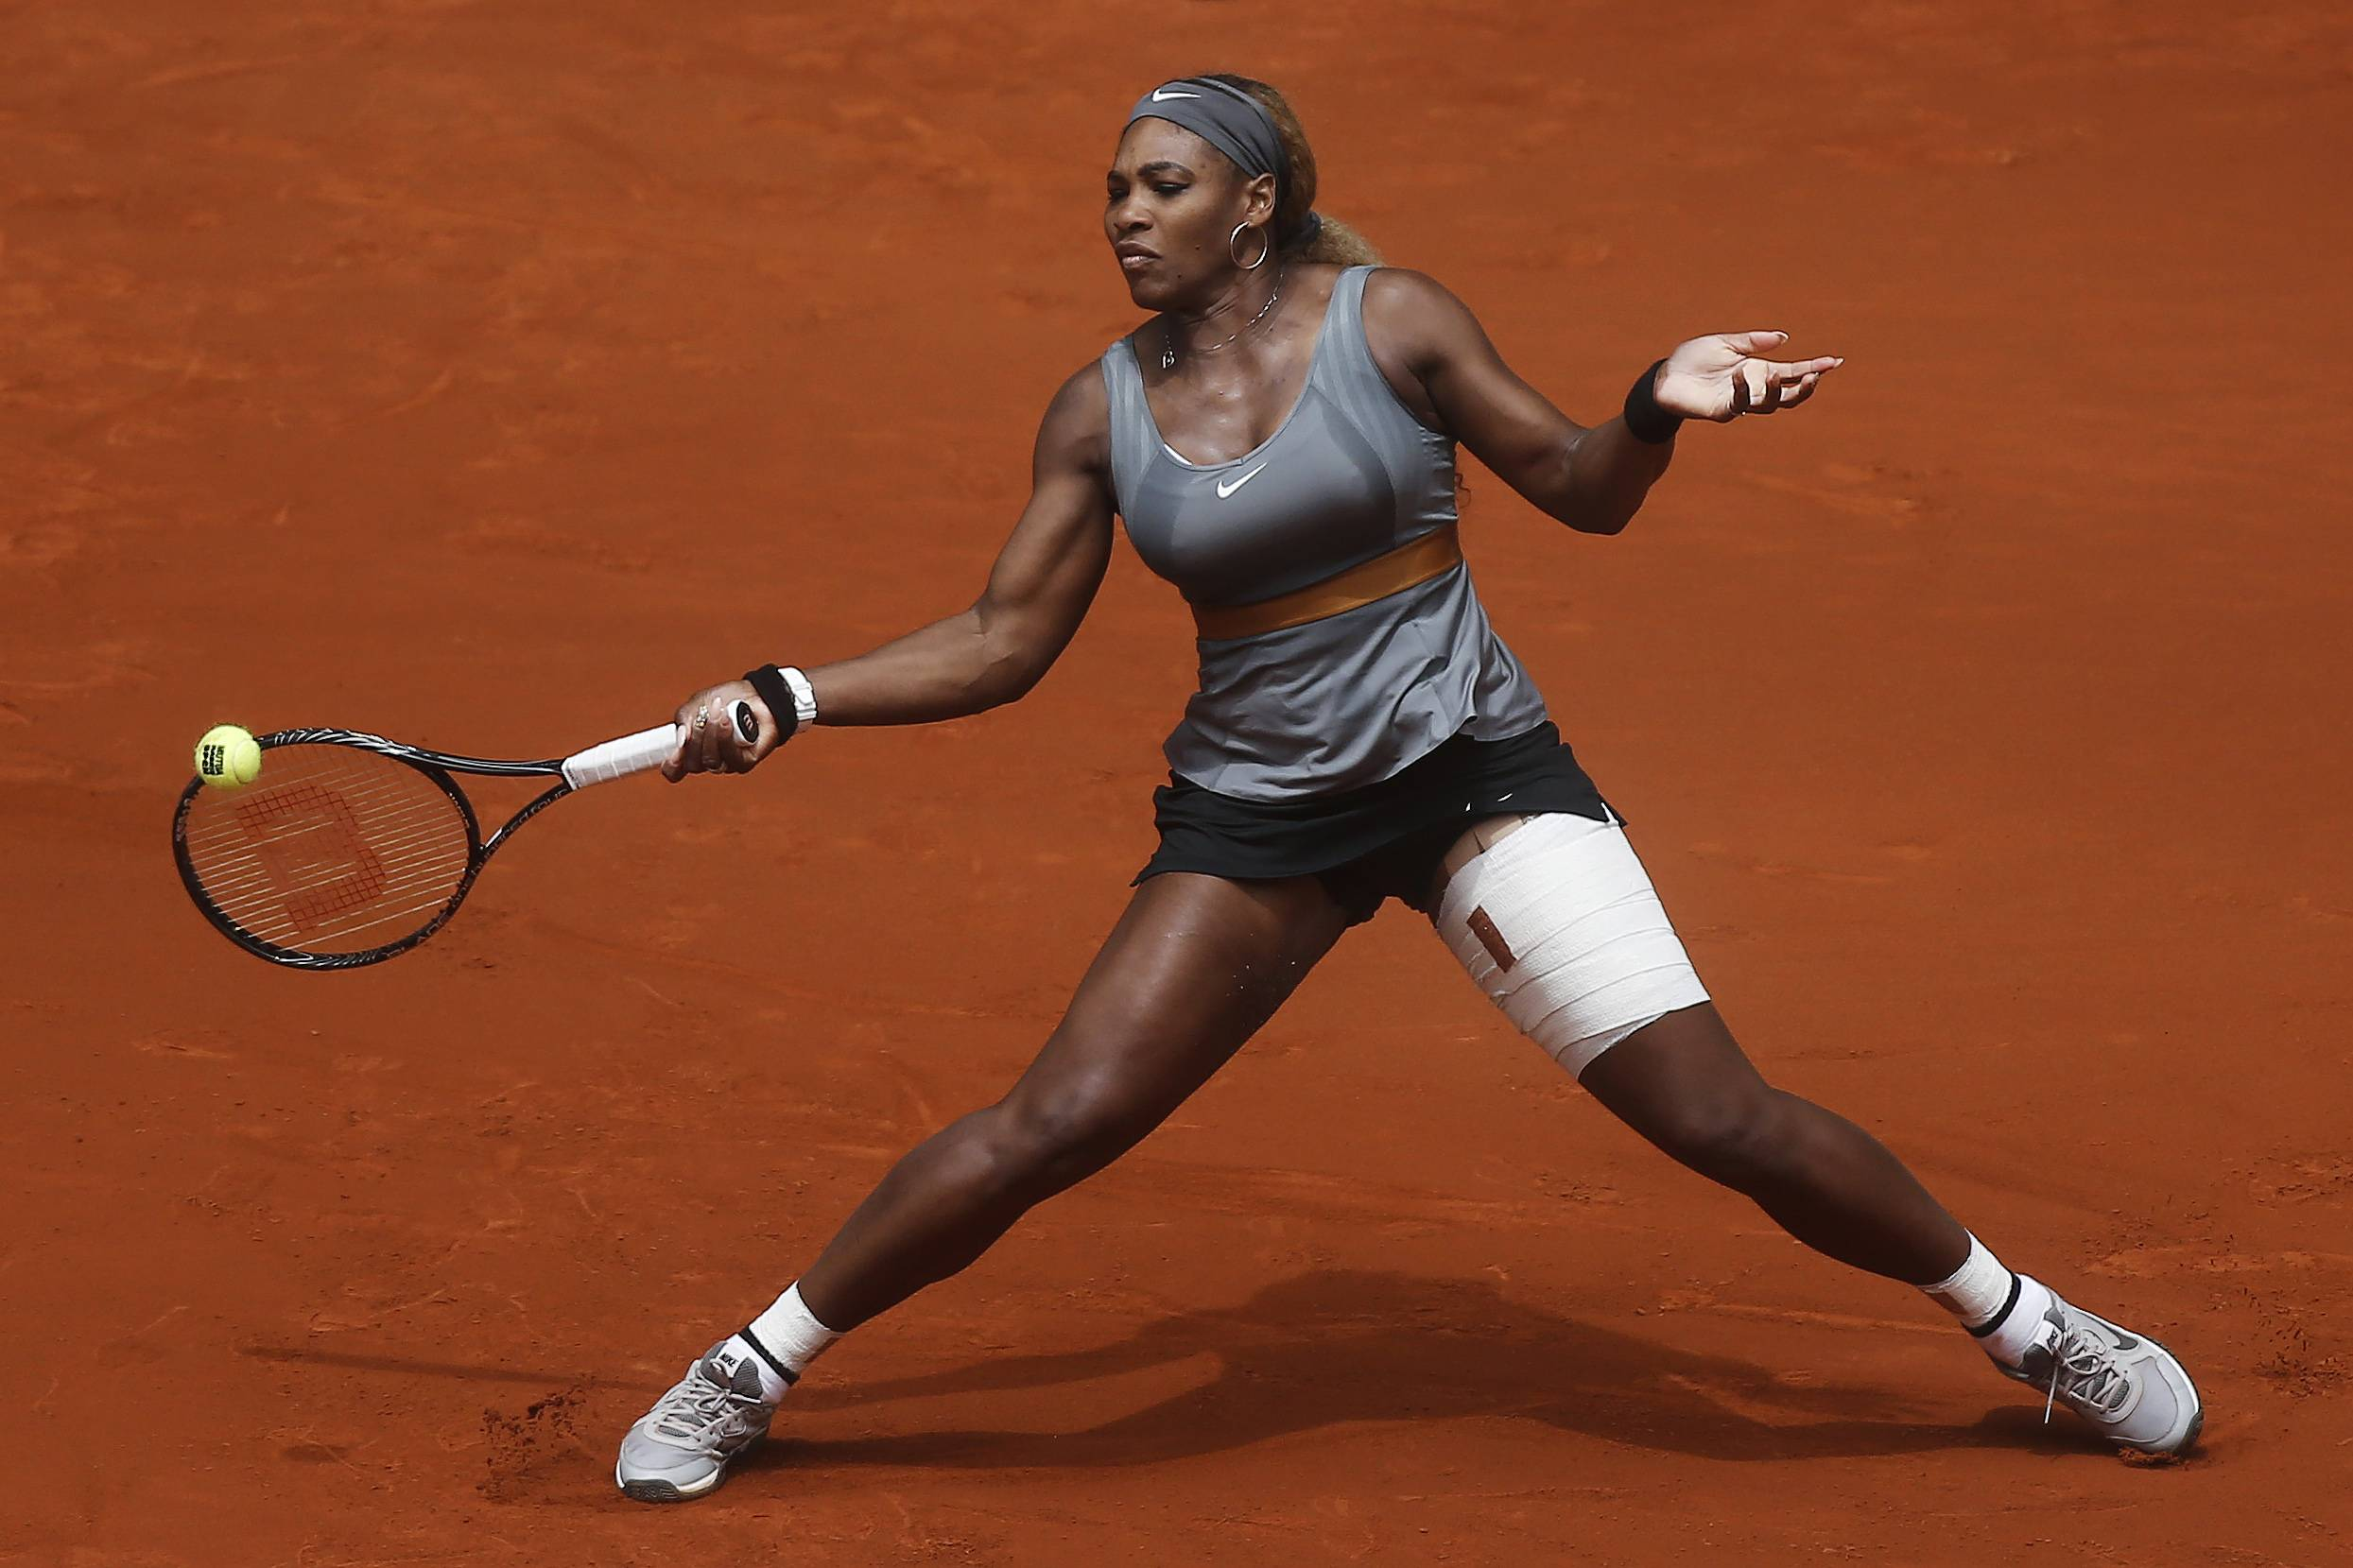 Serena Williams from the U.S. returns the ball during a Madrid Open tennis tournament match against Shuai Peng from China, in Madrid, Spain, Wednesday, May 7, 2014.